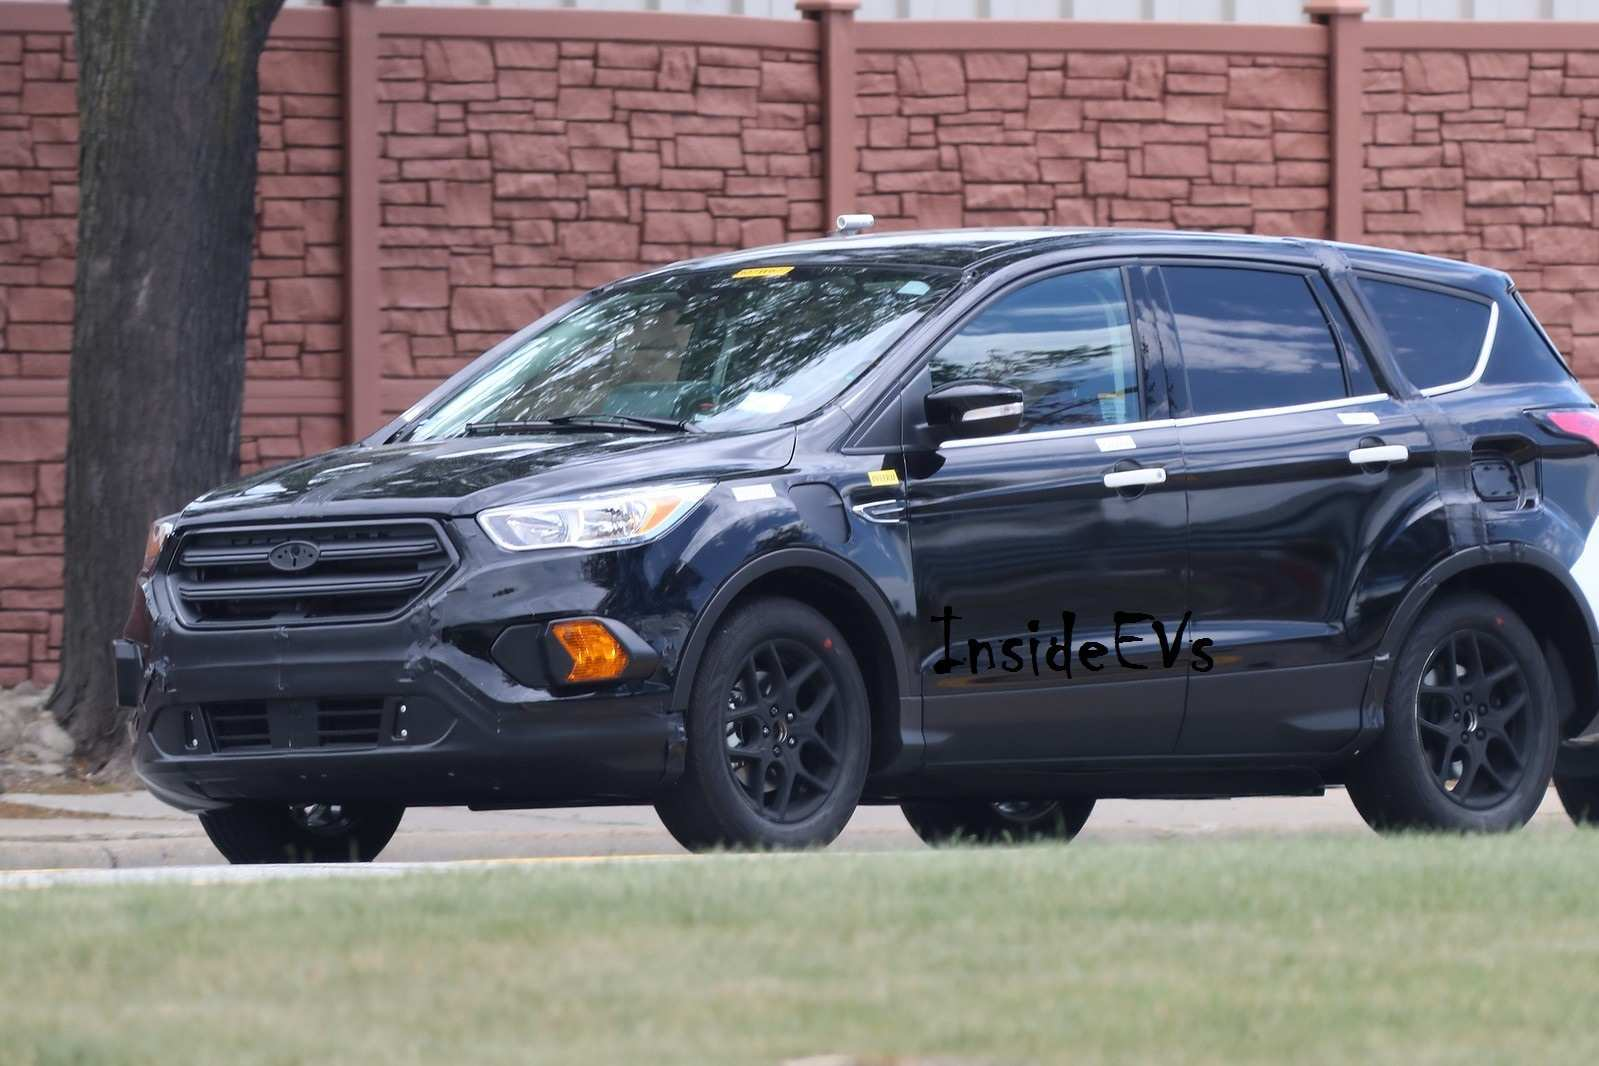 48 New Spy Shots Ford Fusion New Model And Performance